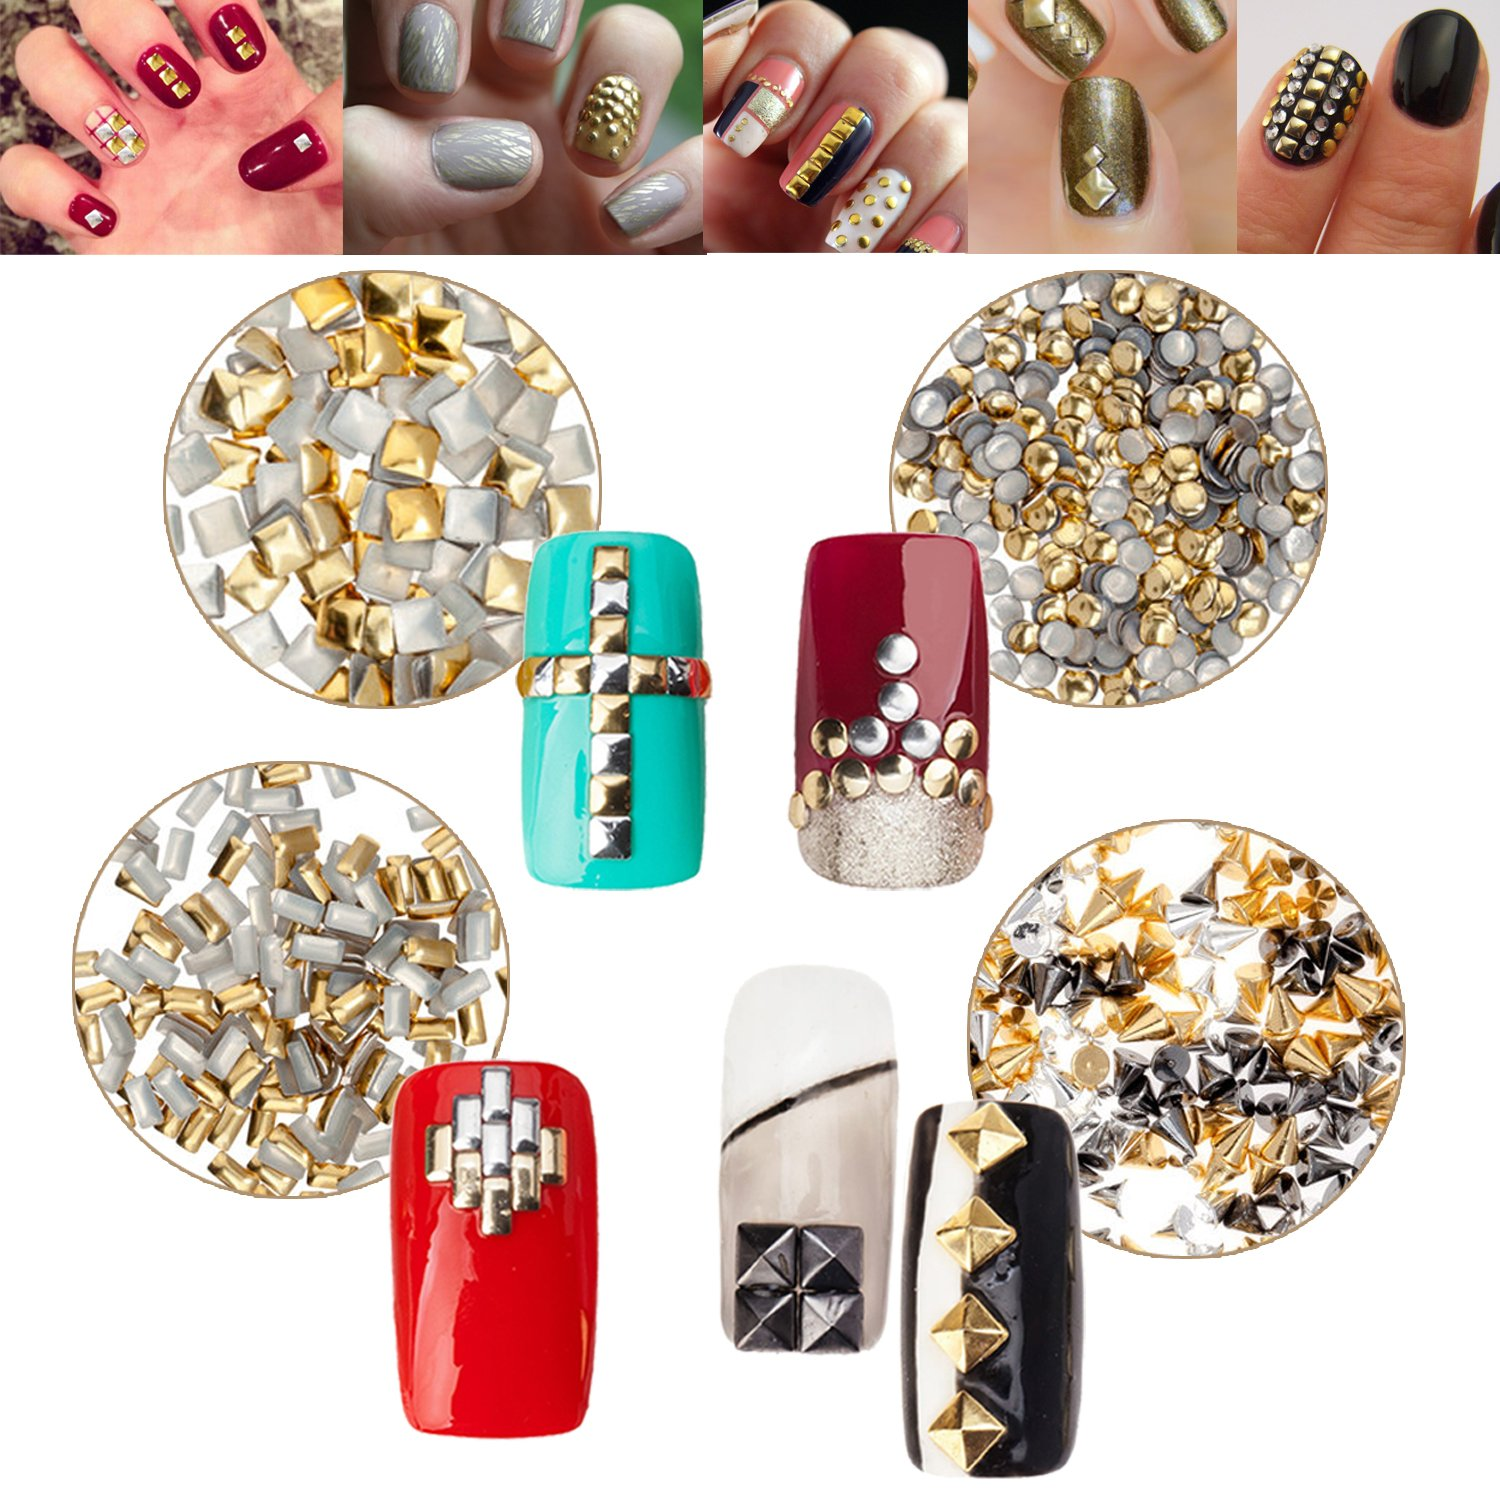 Nail Art 3D Decorations Set of Metal Studs In 5 Different Sizes And Shapes: Square, Round, Spikes, Box And Pyramids By VAGA